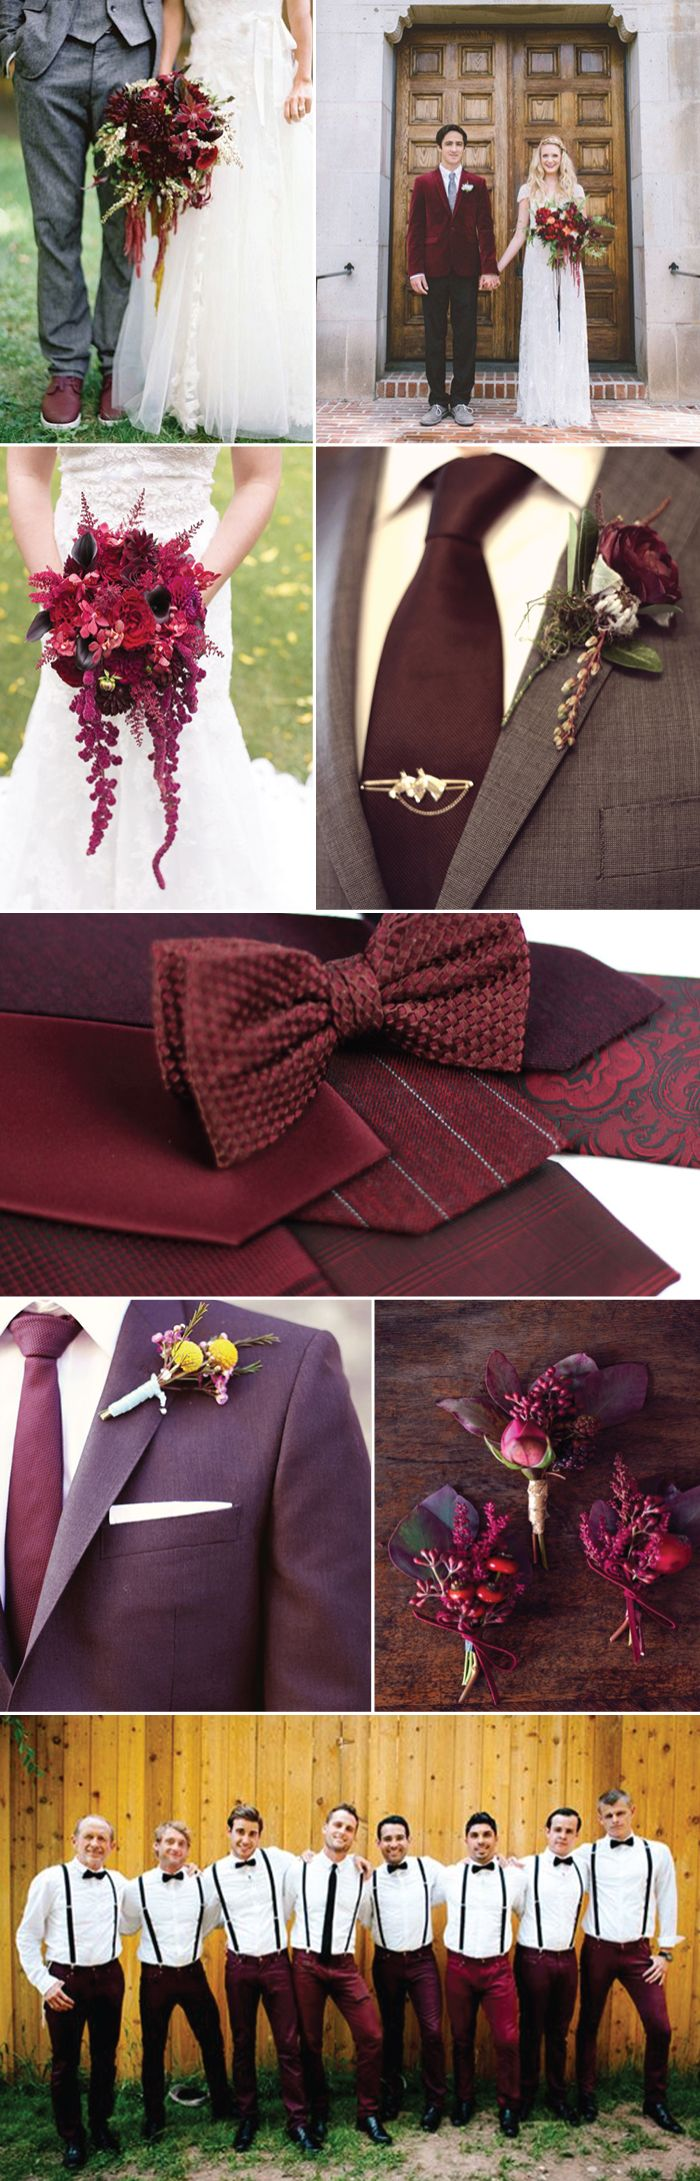 Wedding Inspiration for Pantone's Color of the Year: Marsala